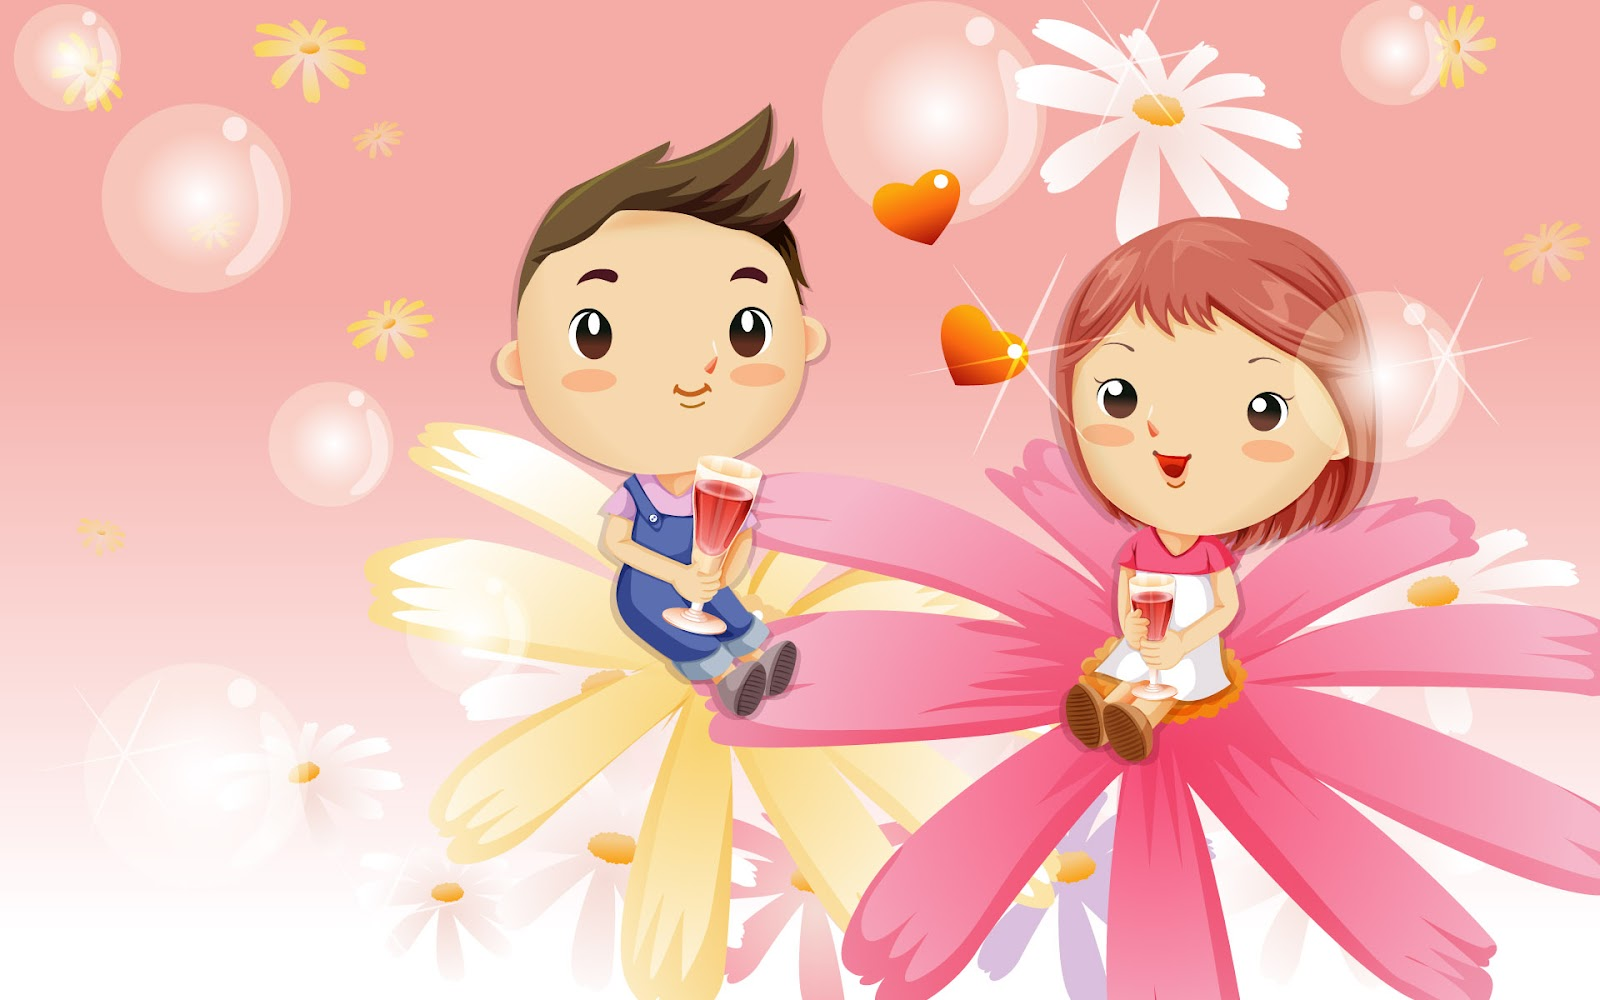 Love Wallpapers Of cartoons : cartoon Wallpapers: Best romantic cartoons wallpaper 2012